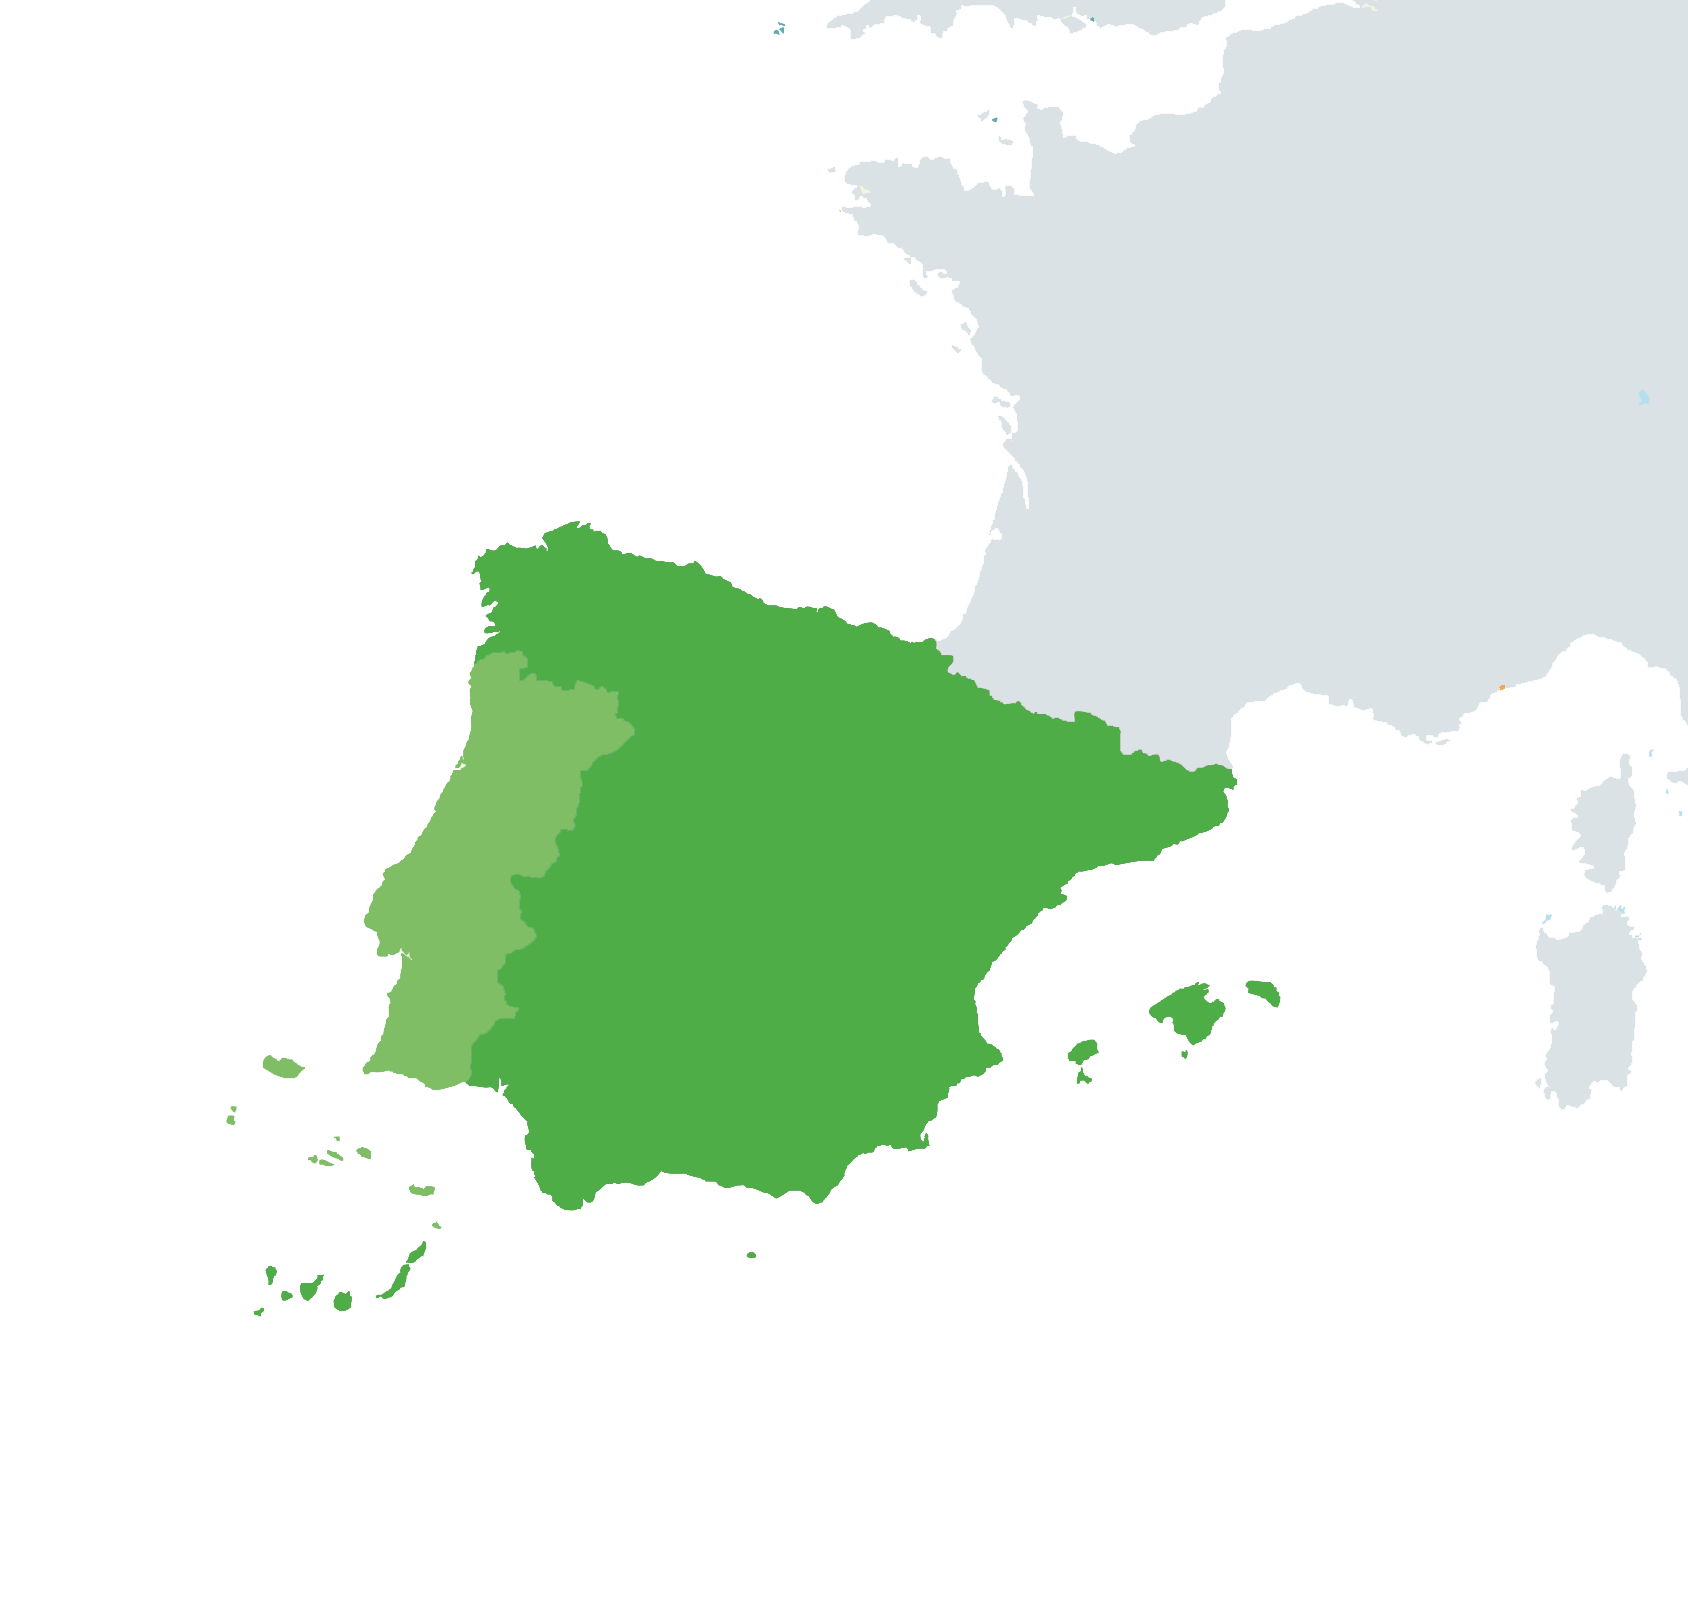 Spain_Portugal_Map